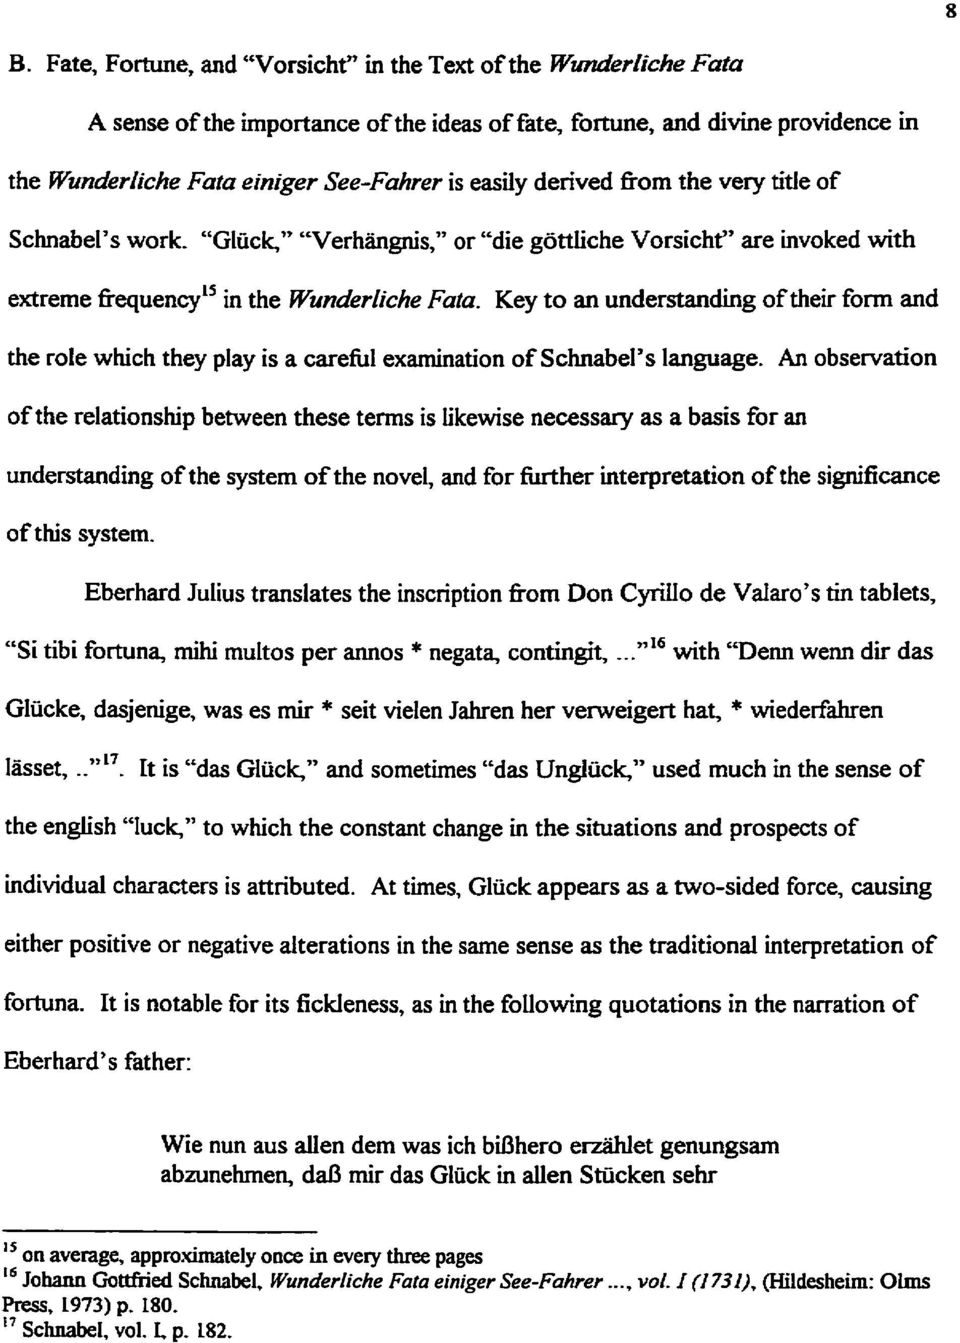 Key to an understanding of their form and the role which they play is a carefiil examination of Schnabel's language.